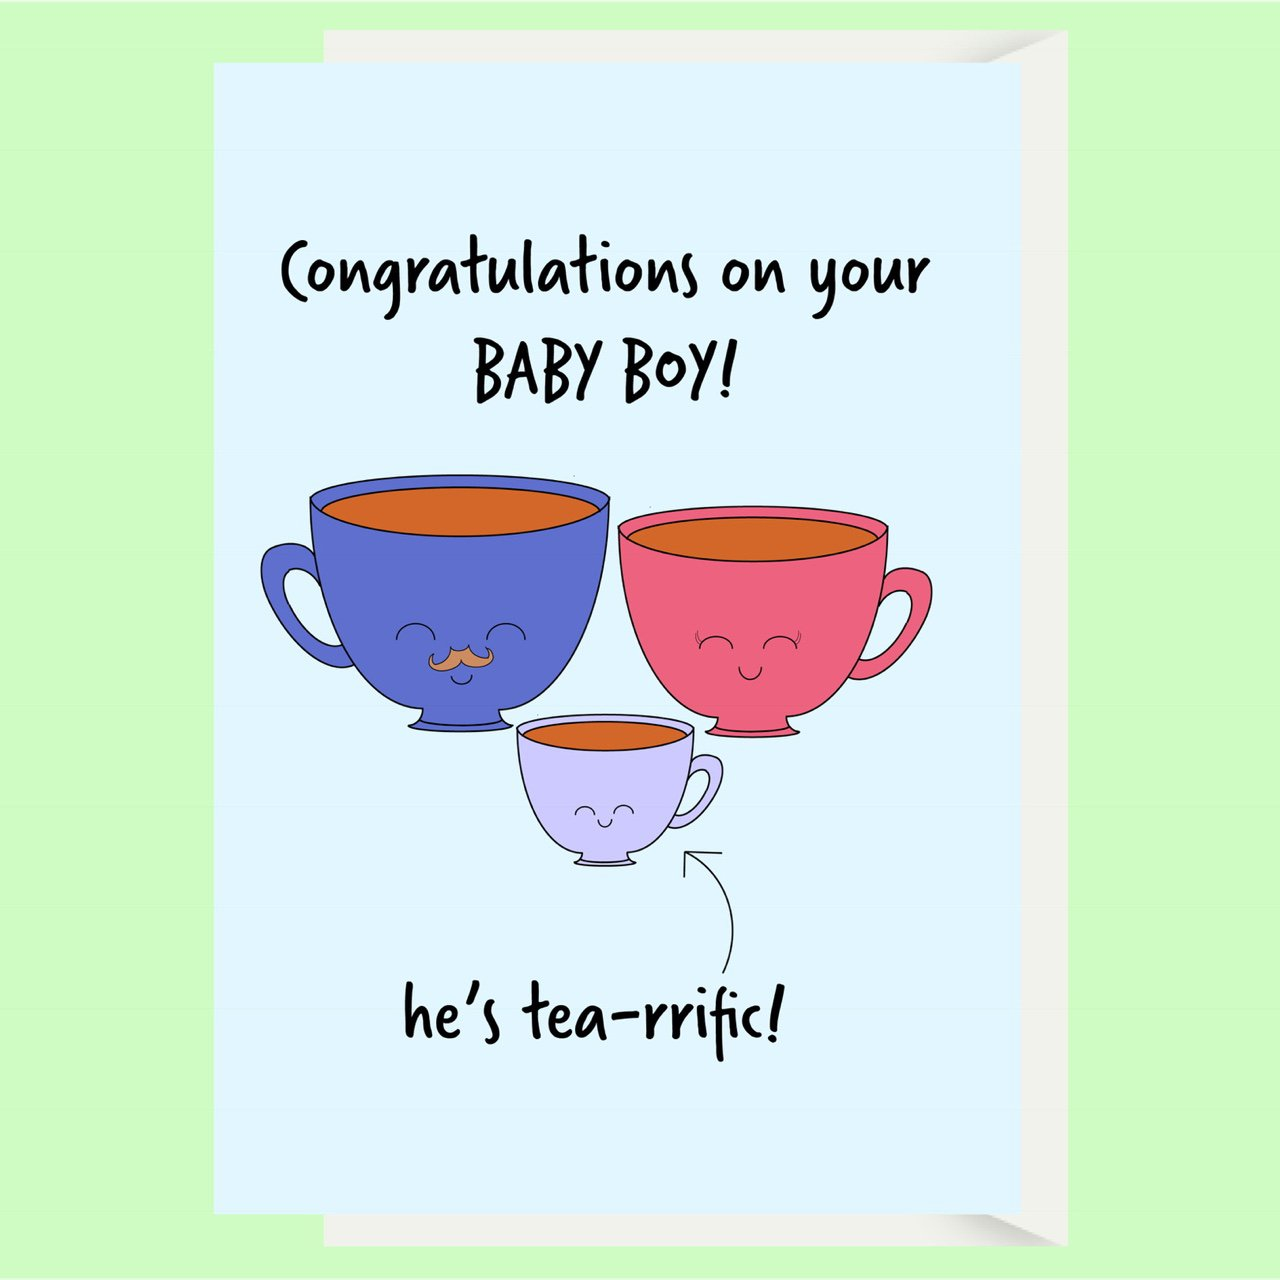 Stylish On Your Baby Greeting Depop Congratulations On Your Baby Boy Messages Congratulations On Your Baby Boy Clip Art baby shower Congratulations On Your Baby Boy